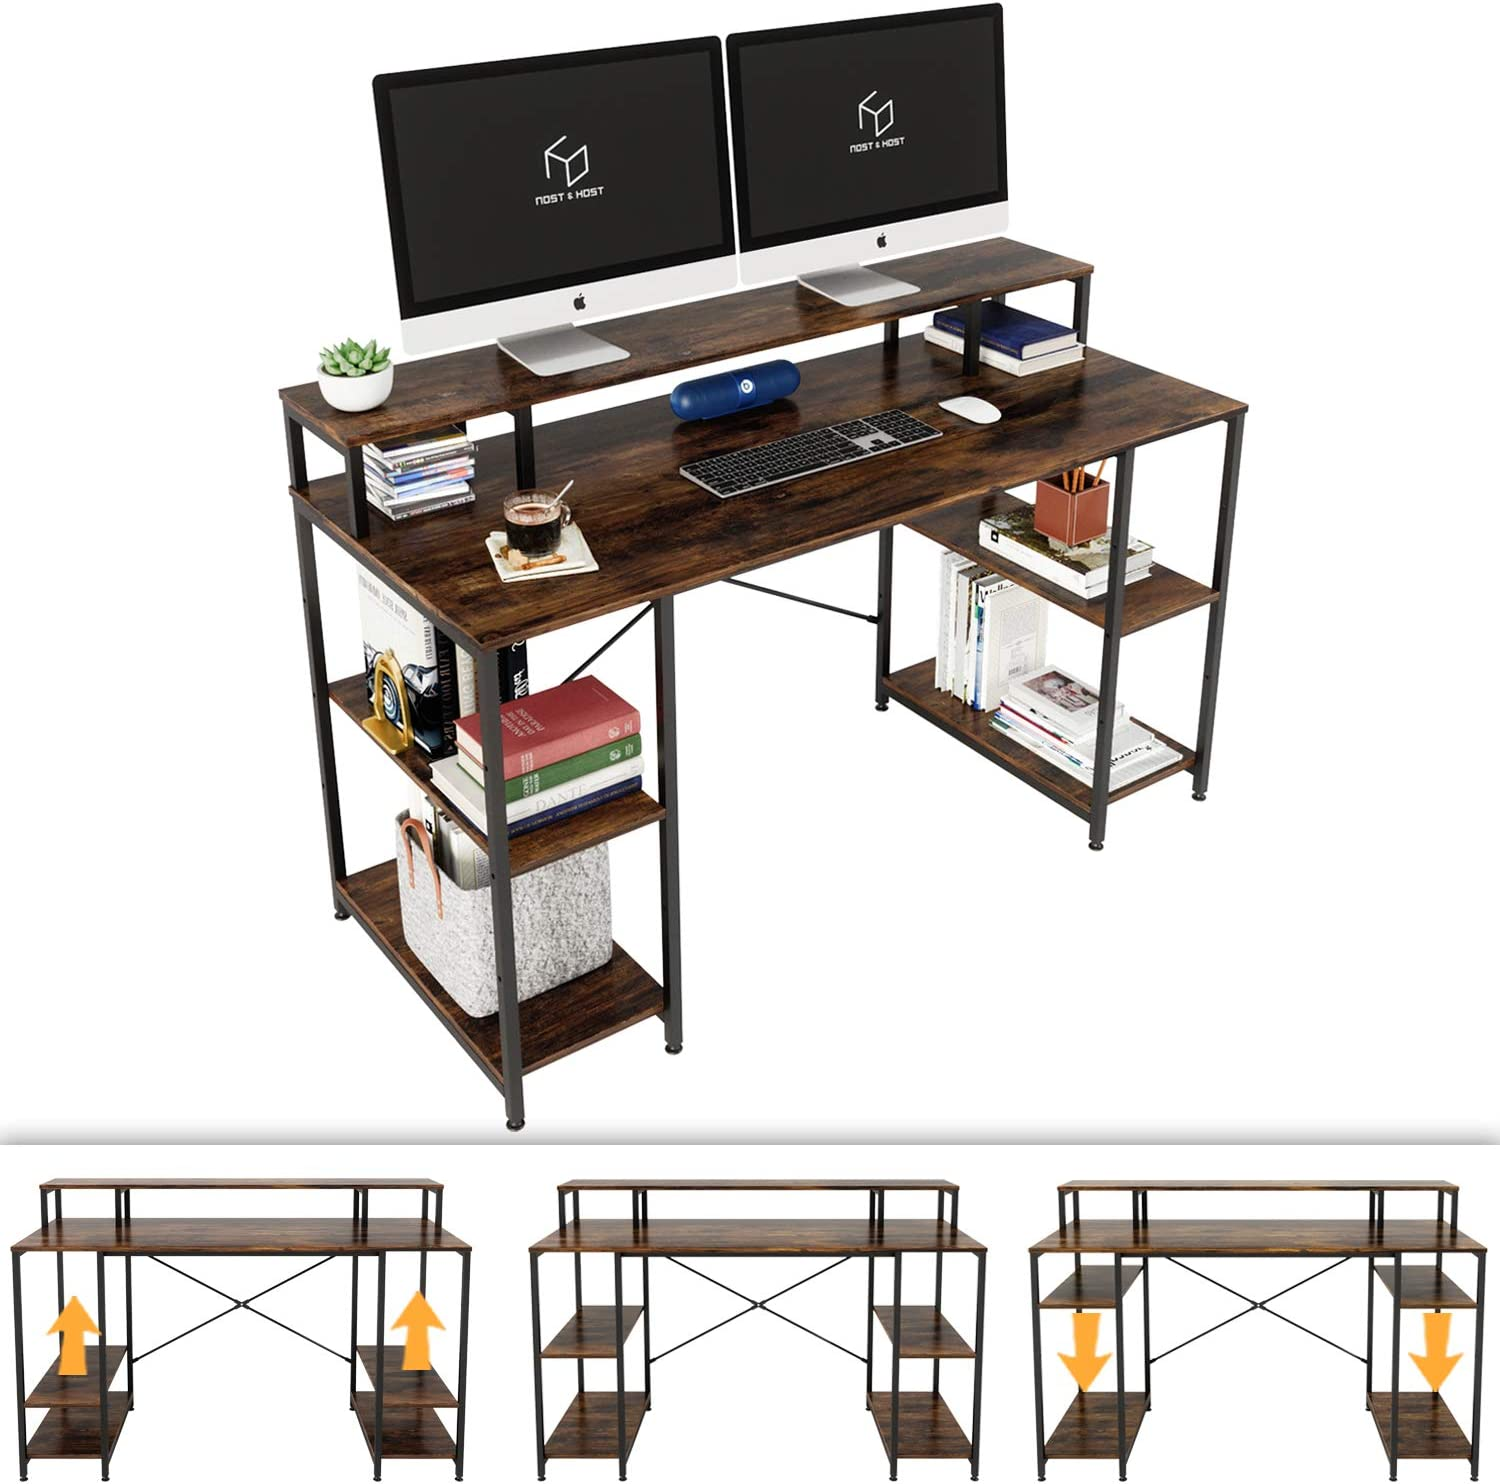 Nost & Host Computer Desk with Ergonomic Monitor Shelf & Storage, Dual Monitor Stand Hutch and Home Office Gaming & Working Sturdy Table with Adjustable Shelves, Easy Assemble, 55 inches, Rustic Brown